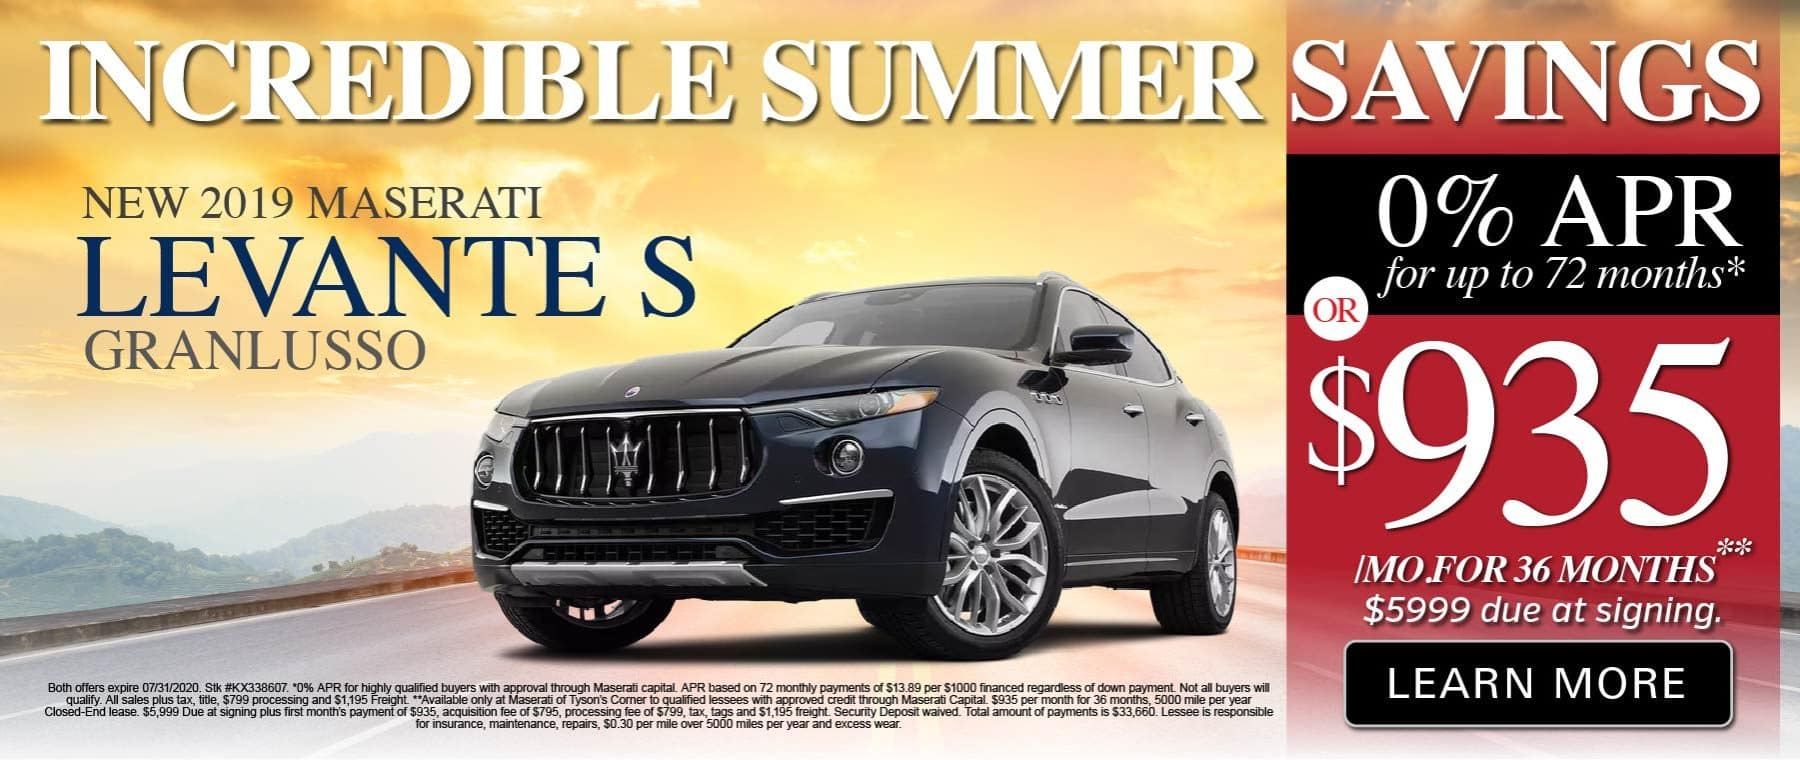 Incredible Summer Savings. 2019 Maserati LEAVNTE S Granlusso. O% APR for 72 months or $935 a month for 36 months. Learn More.